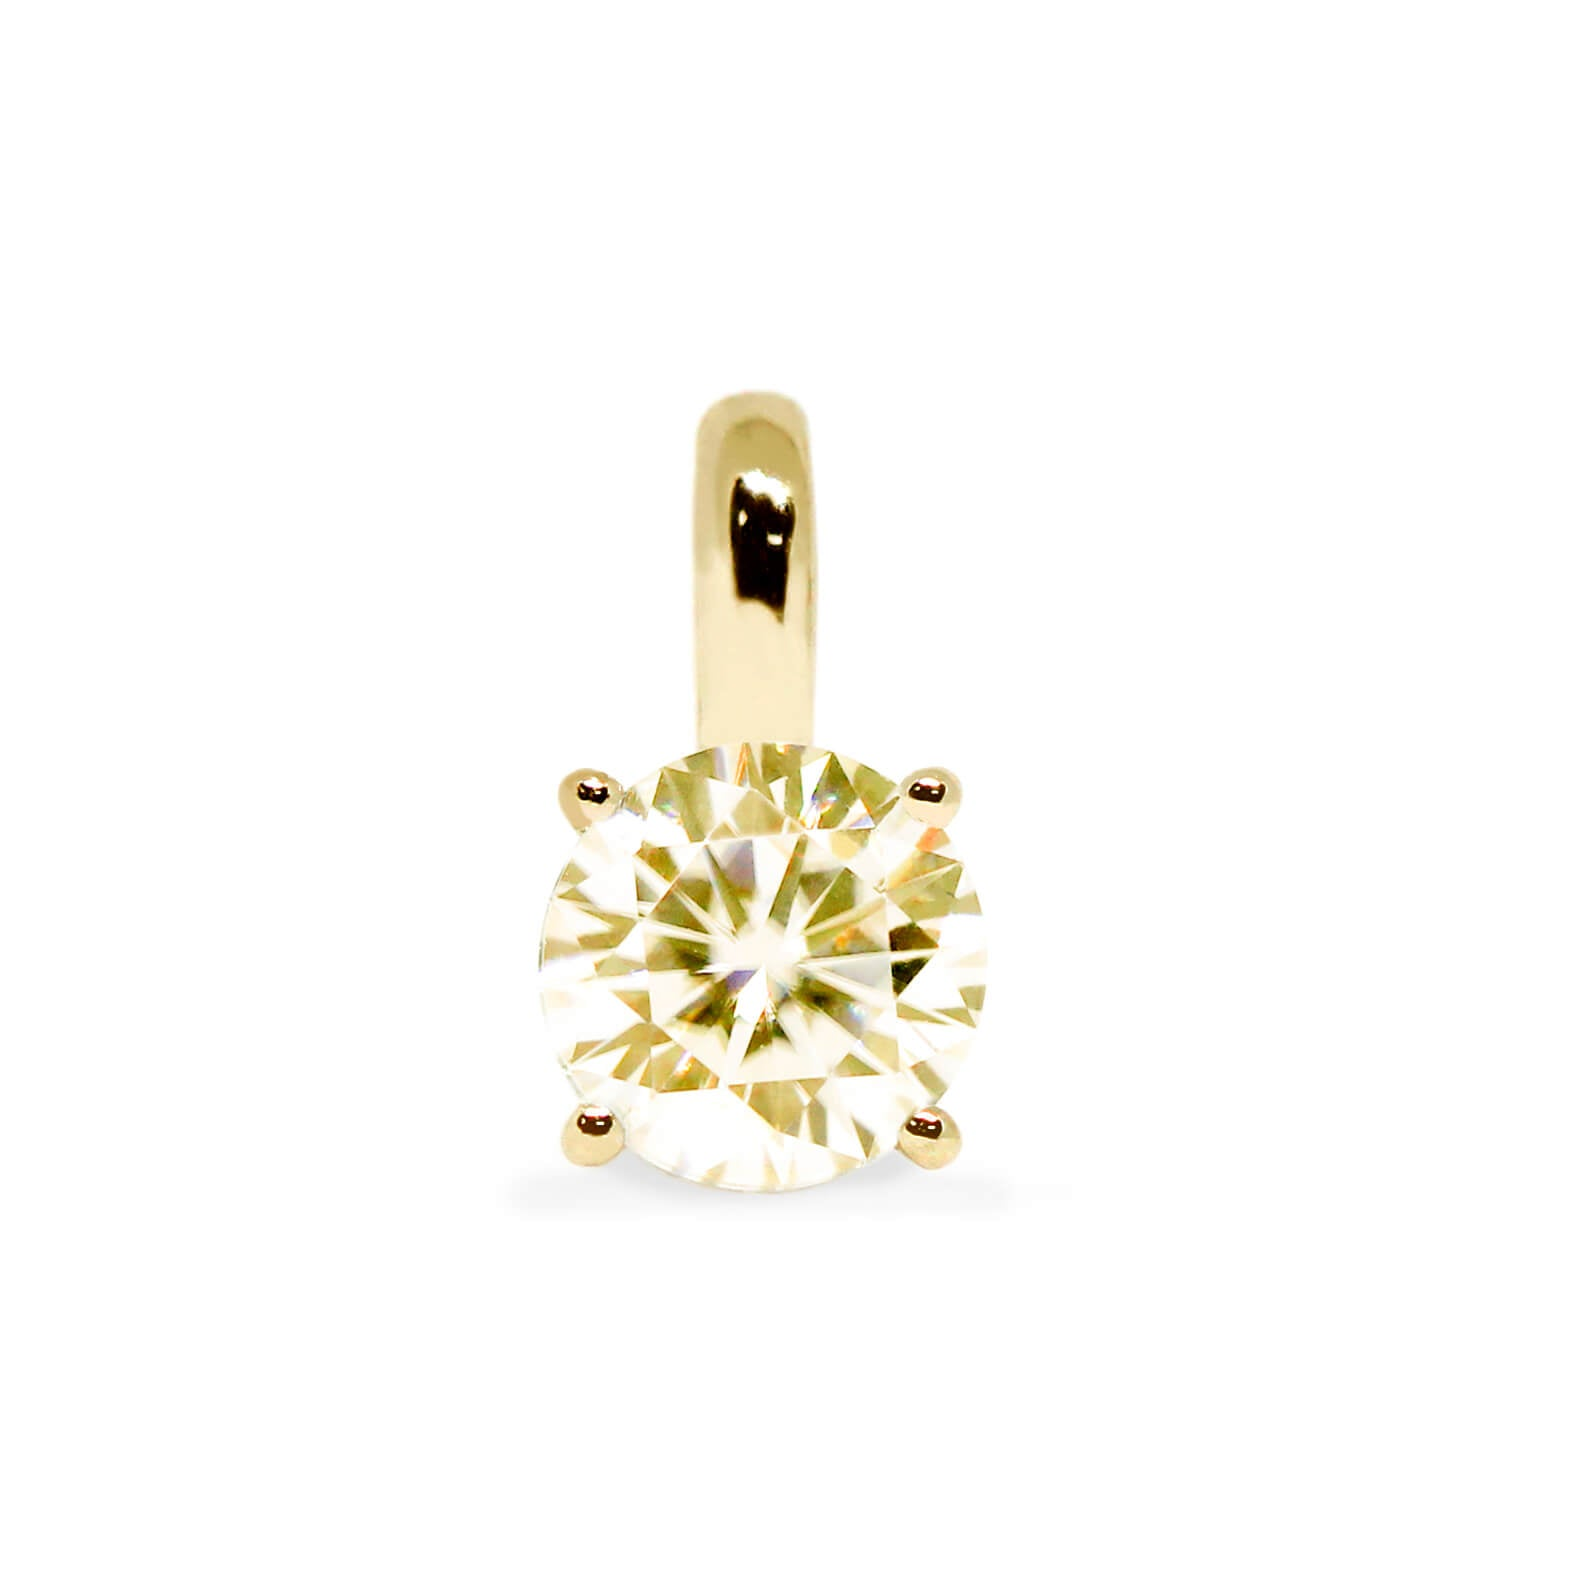 Fancy Light Yellow Moissanite Round Solitaire 18K Gold Pendant - Lecaine Gems Moissanite